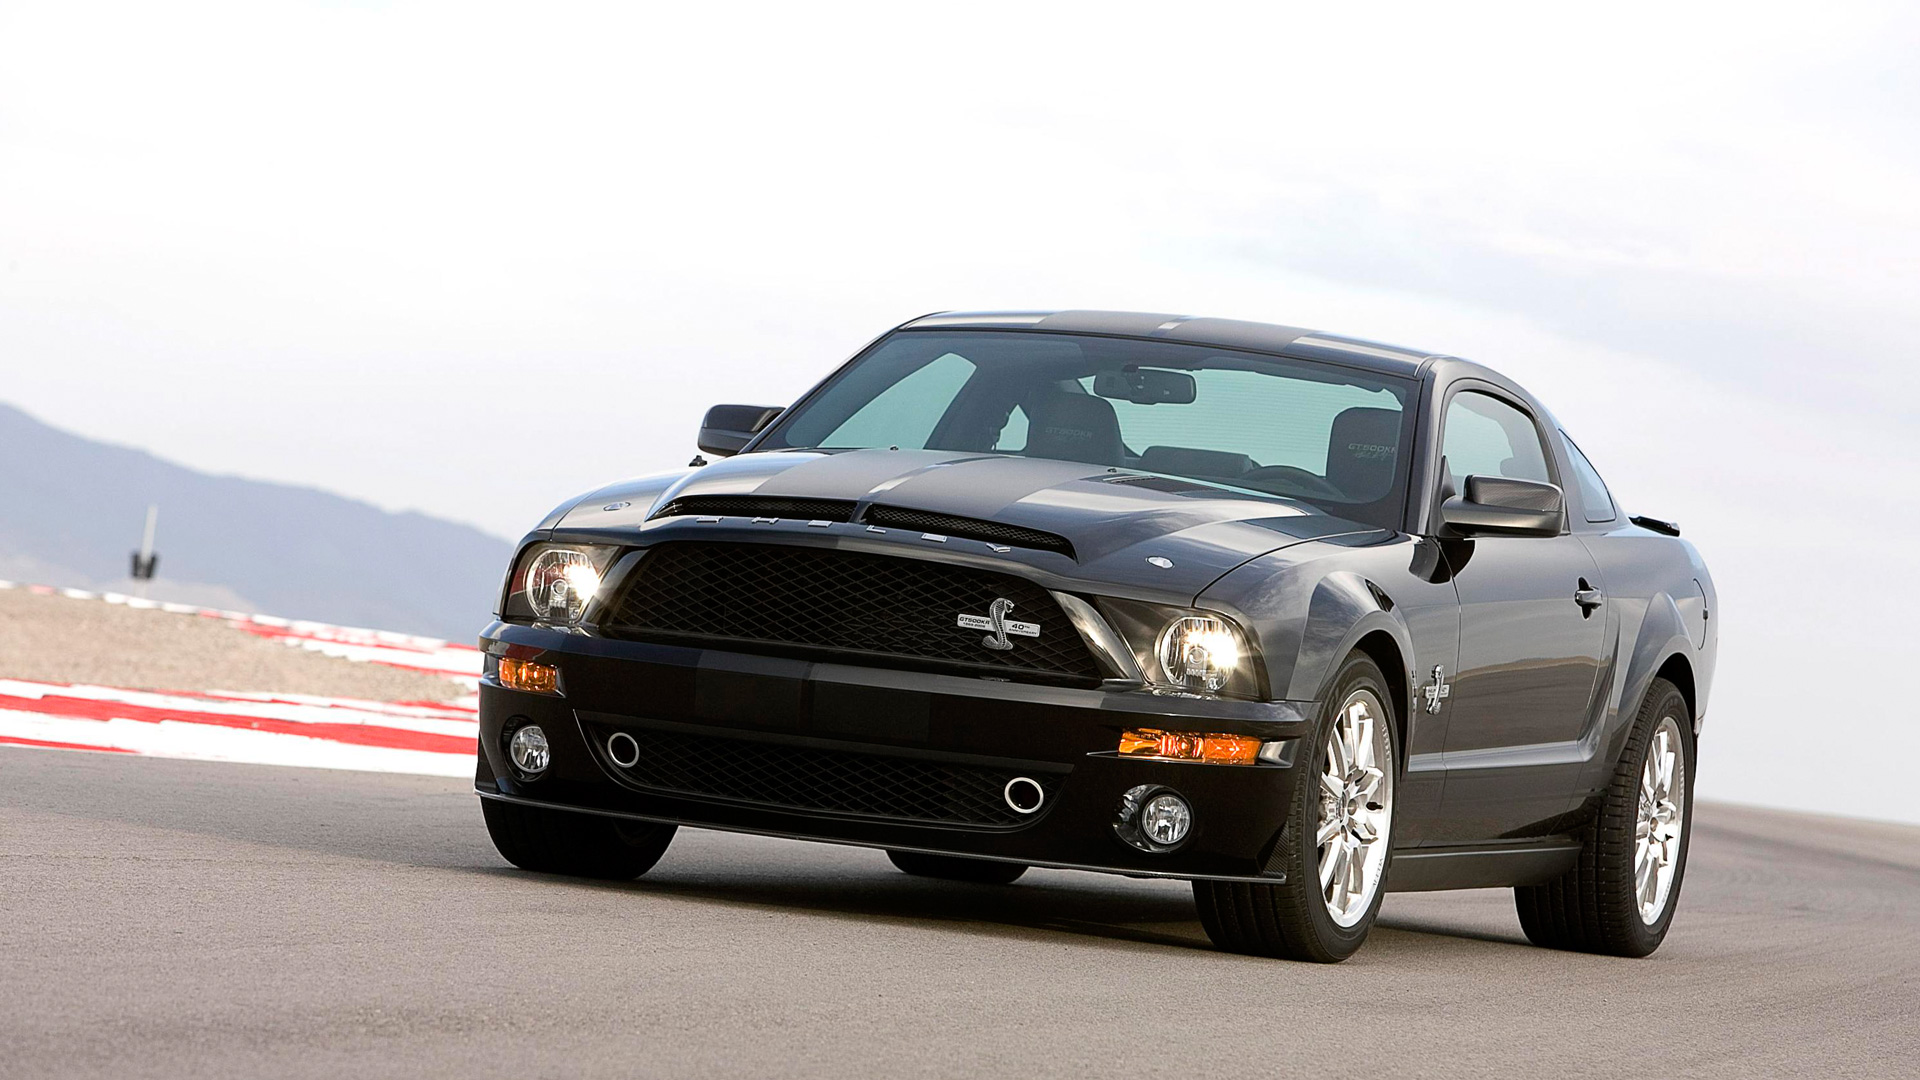 shelby gt 500 shelby shelby gt 500 wallpapers shelby gt shelby gt 500 1920x1080